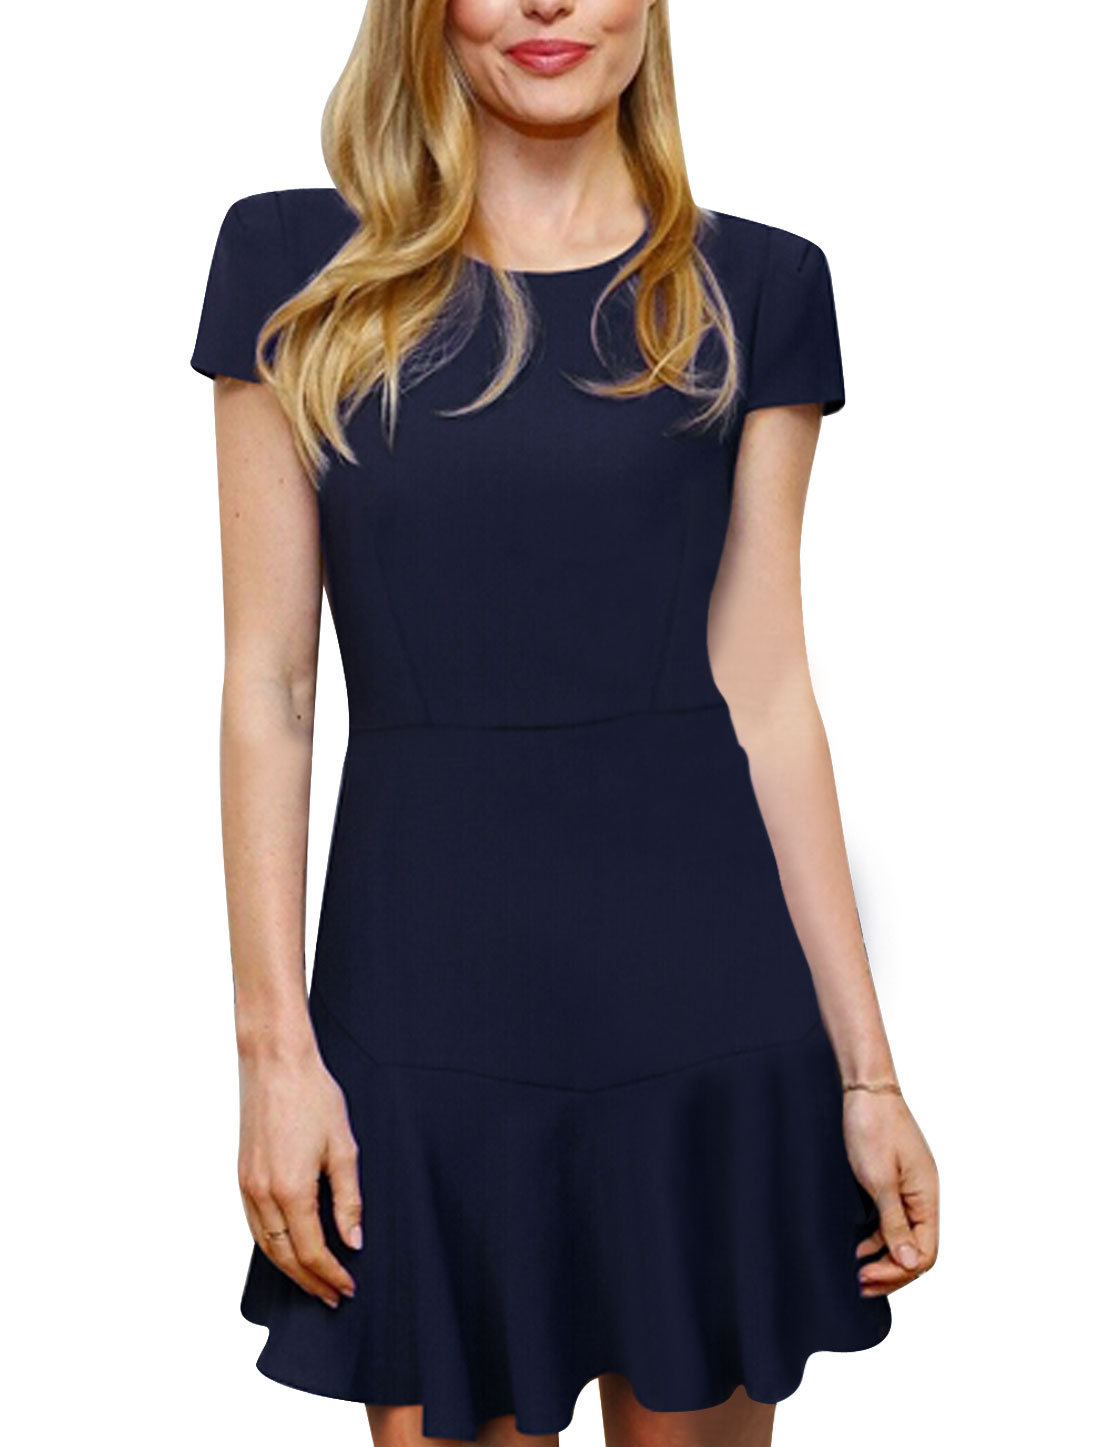 Lady Round Neck Zipper Closure Back Casual Short Dress Navy Blue S